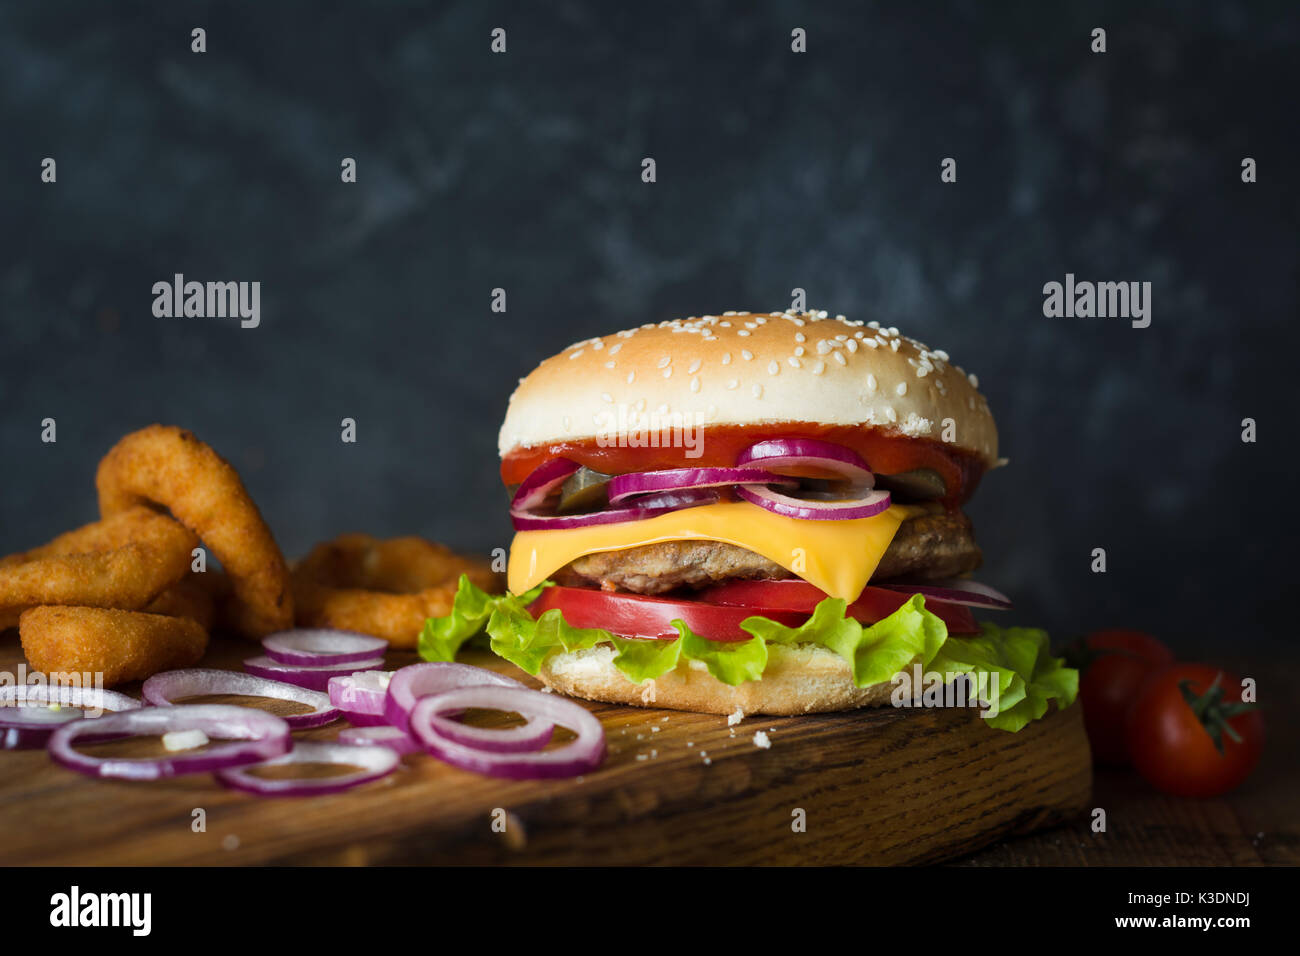 Cheeseburger and onion rings on wooden cutting board over dark background. Closeup view, selective focus. Fast food concept - Stock Image